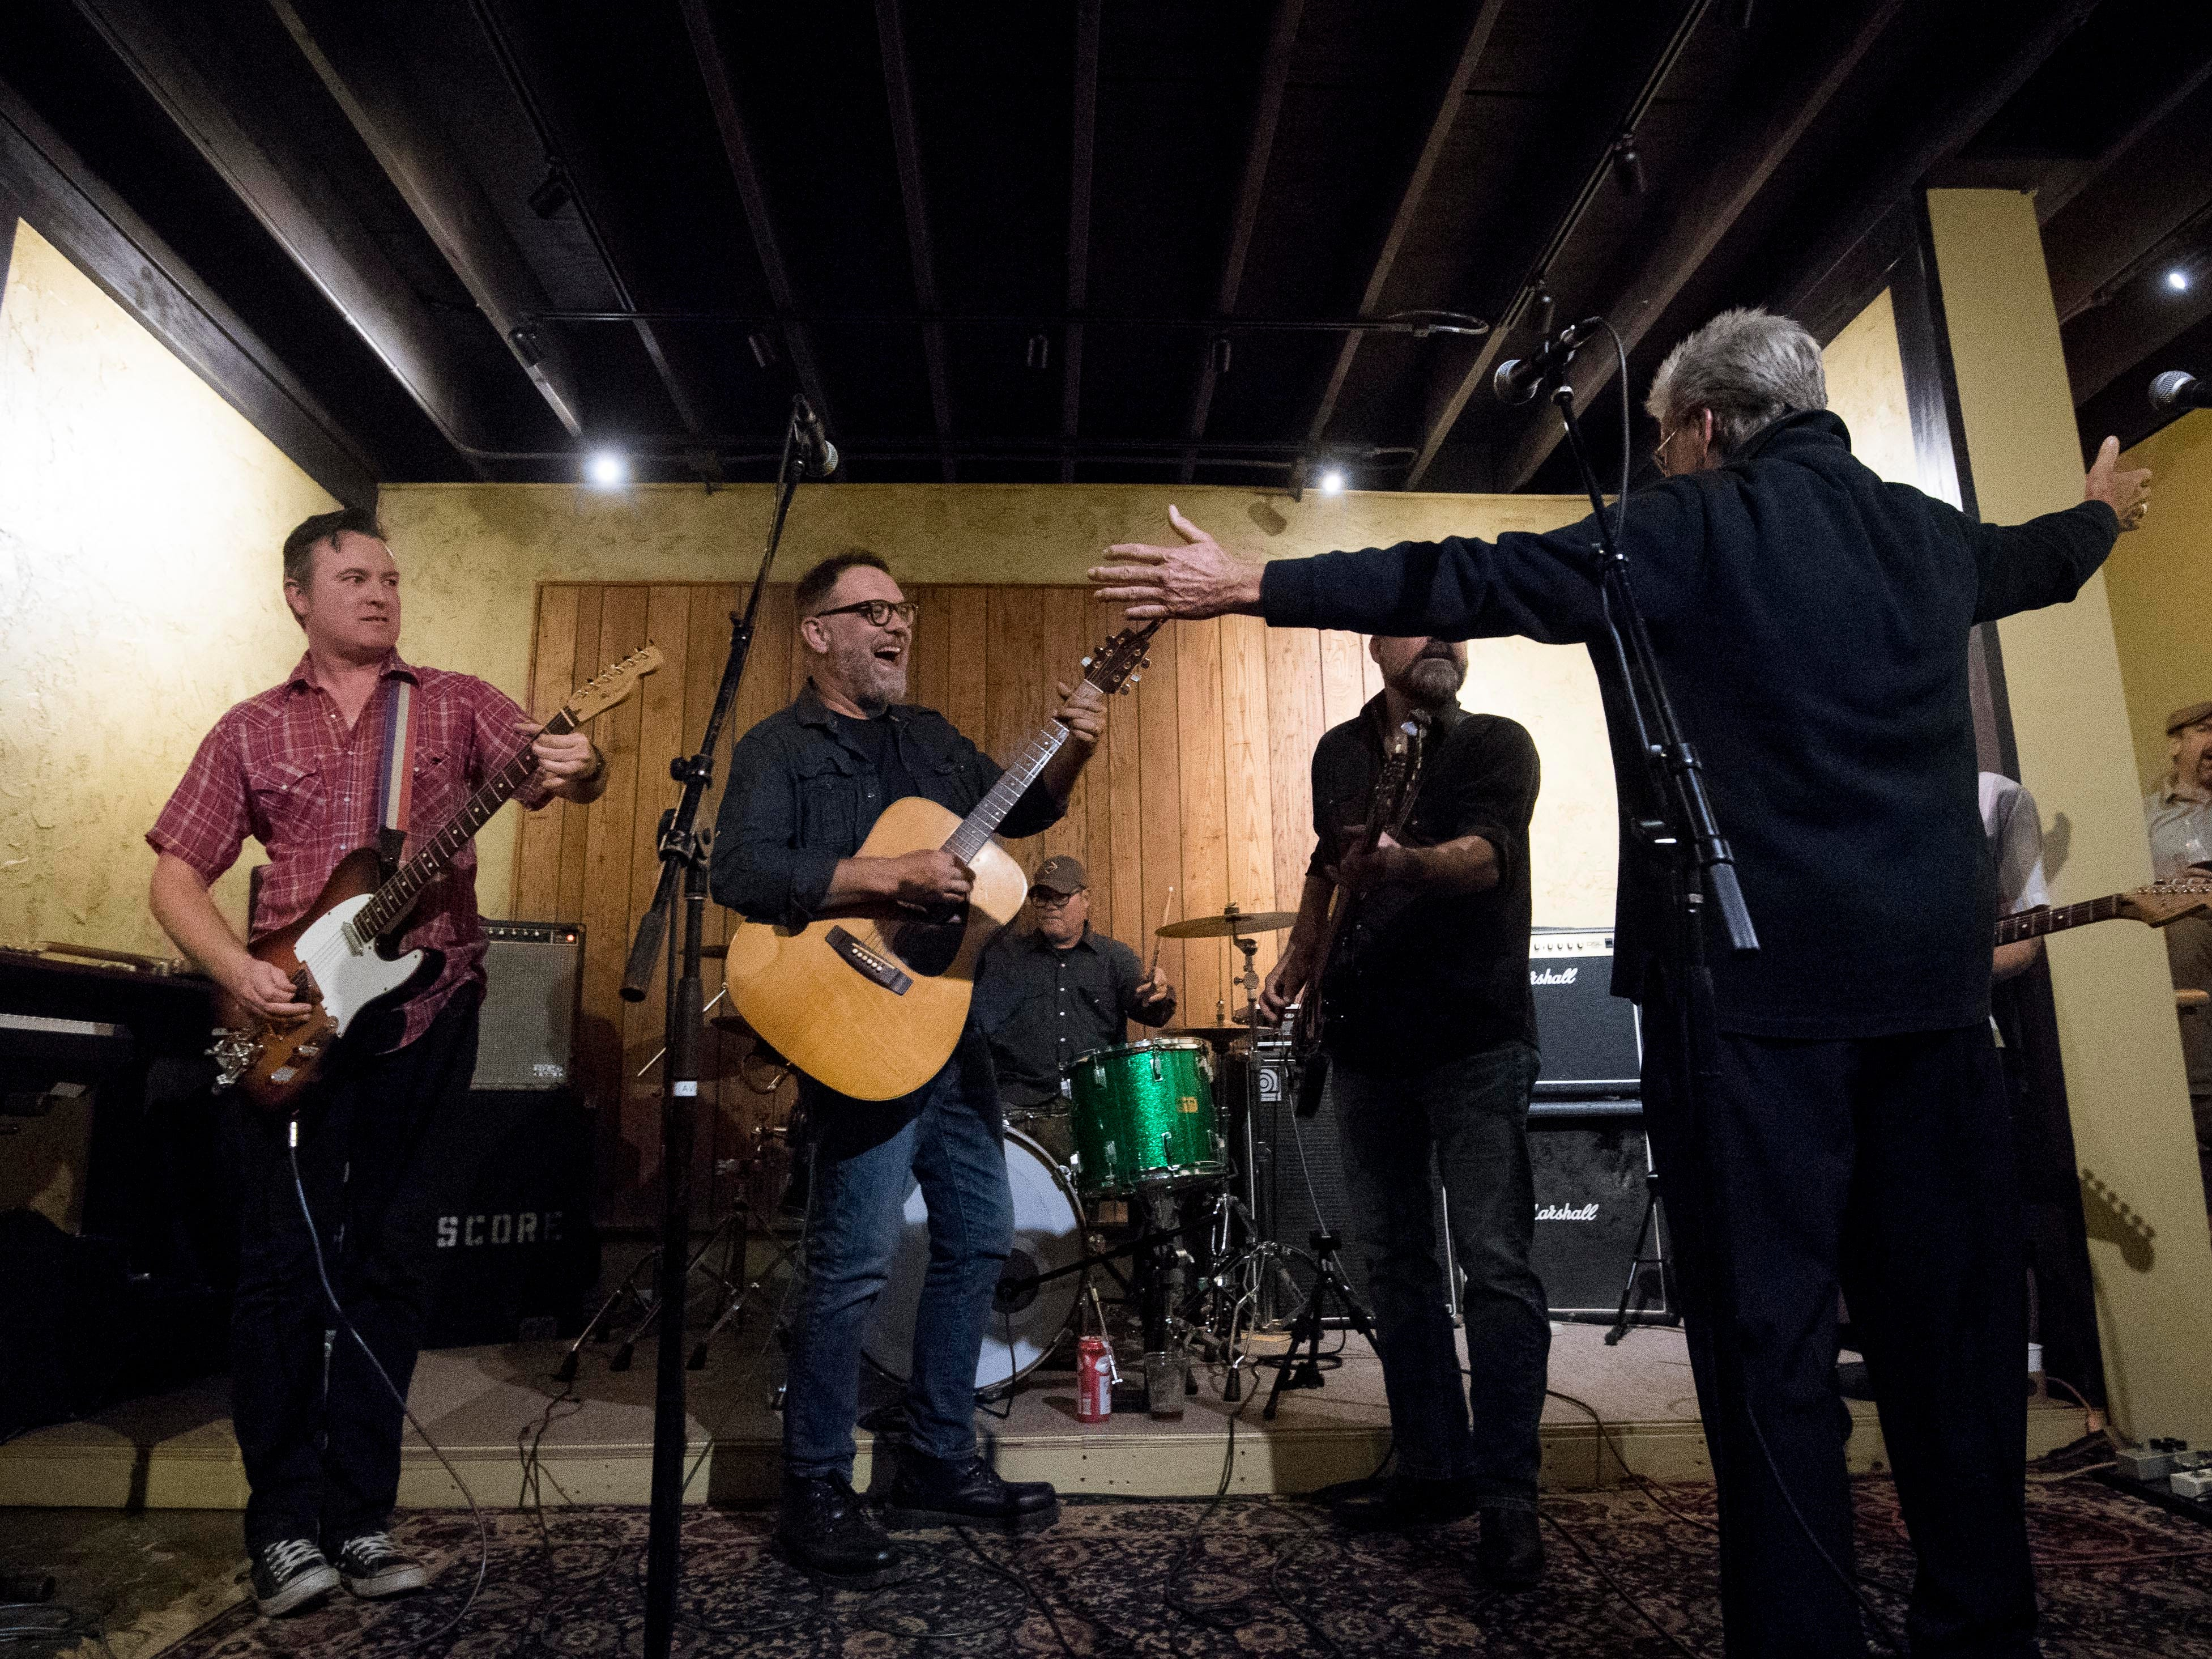 Con Hunley thanks Mic Harrison and the High Score after playing together at The Corner Lounge on Friday, October 19, 2018.